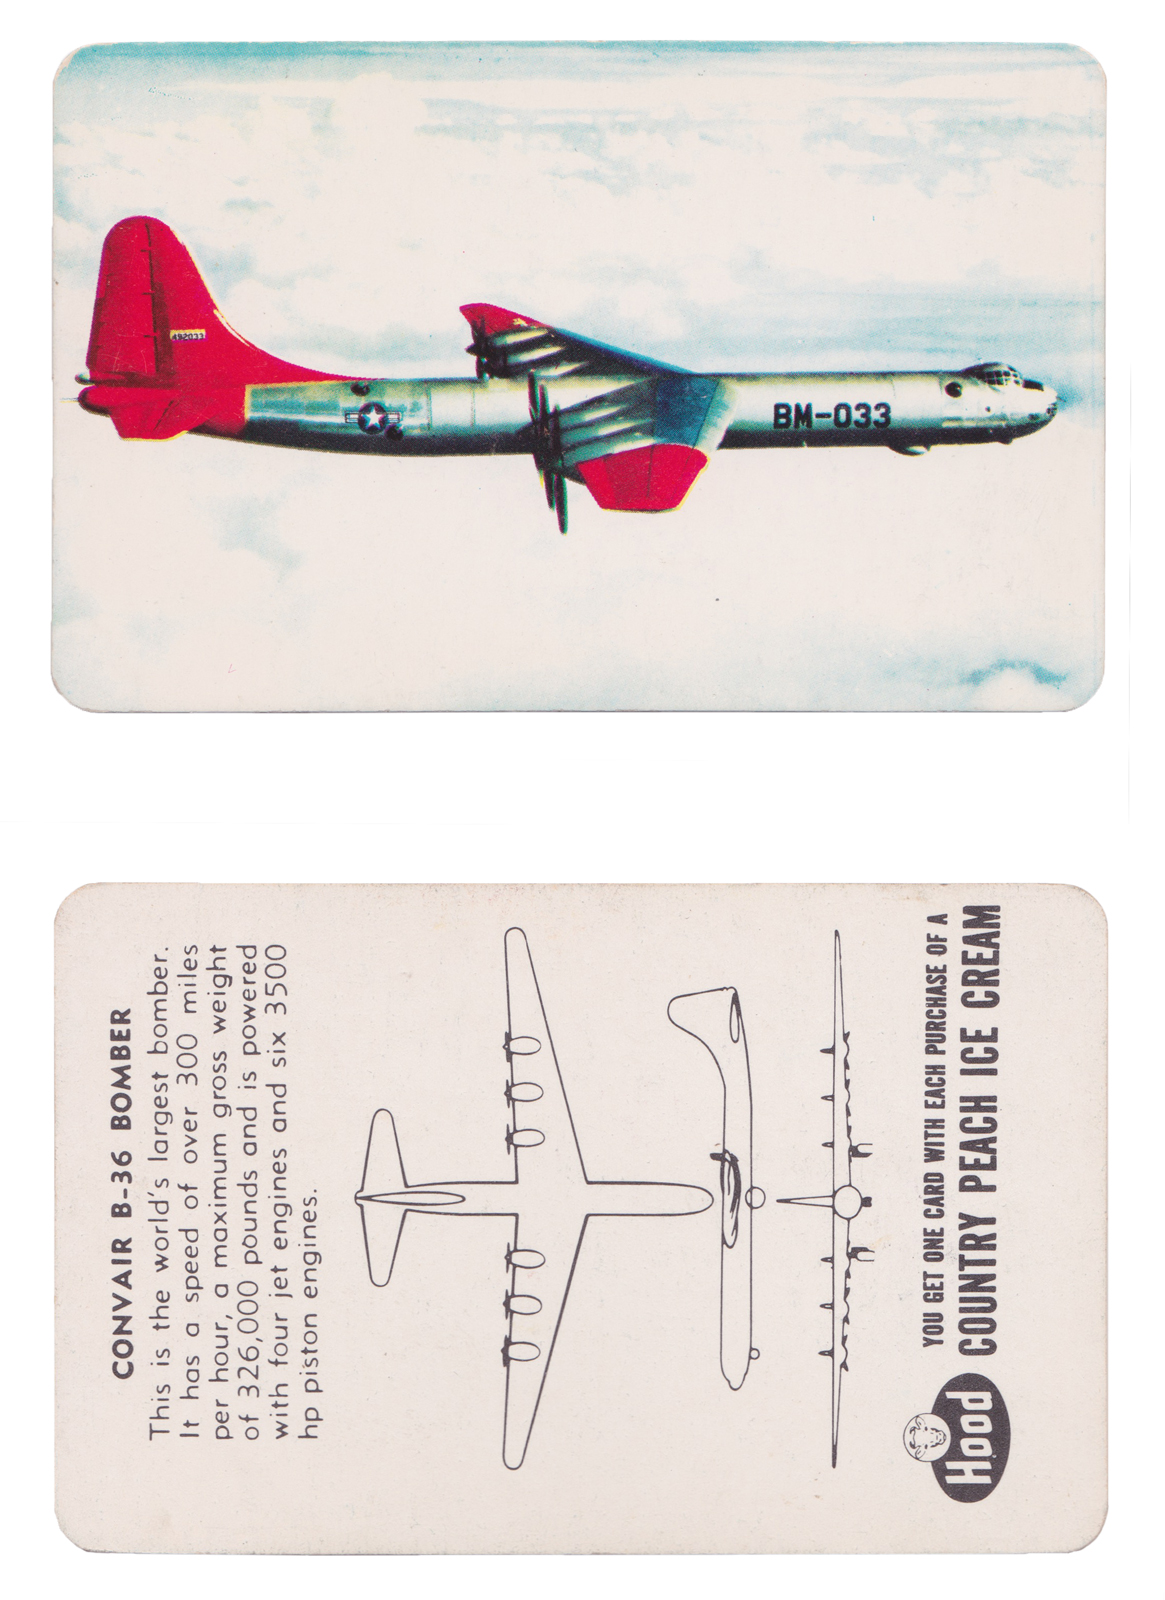 "Convair B-36 Bomber  Series: Aircraft Recognition Cards Manufacture: HP Hood LLC Card Dimensions: 3.5"" x 2.25"" USA - 1952"